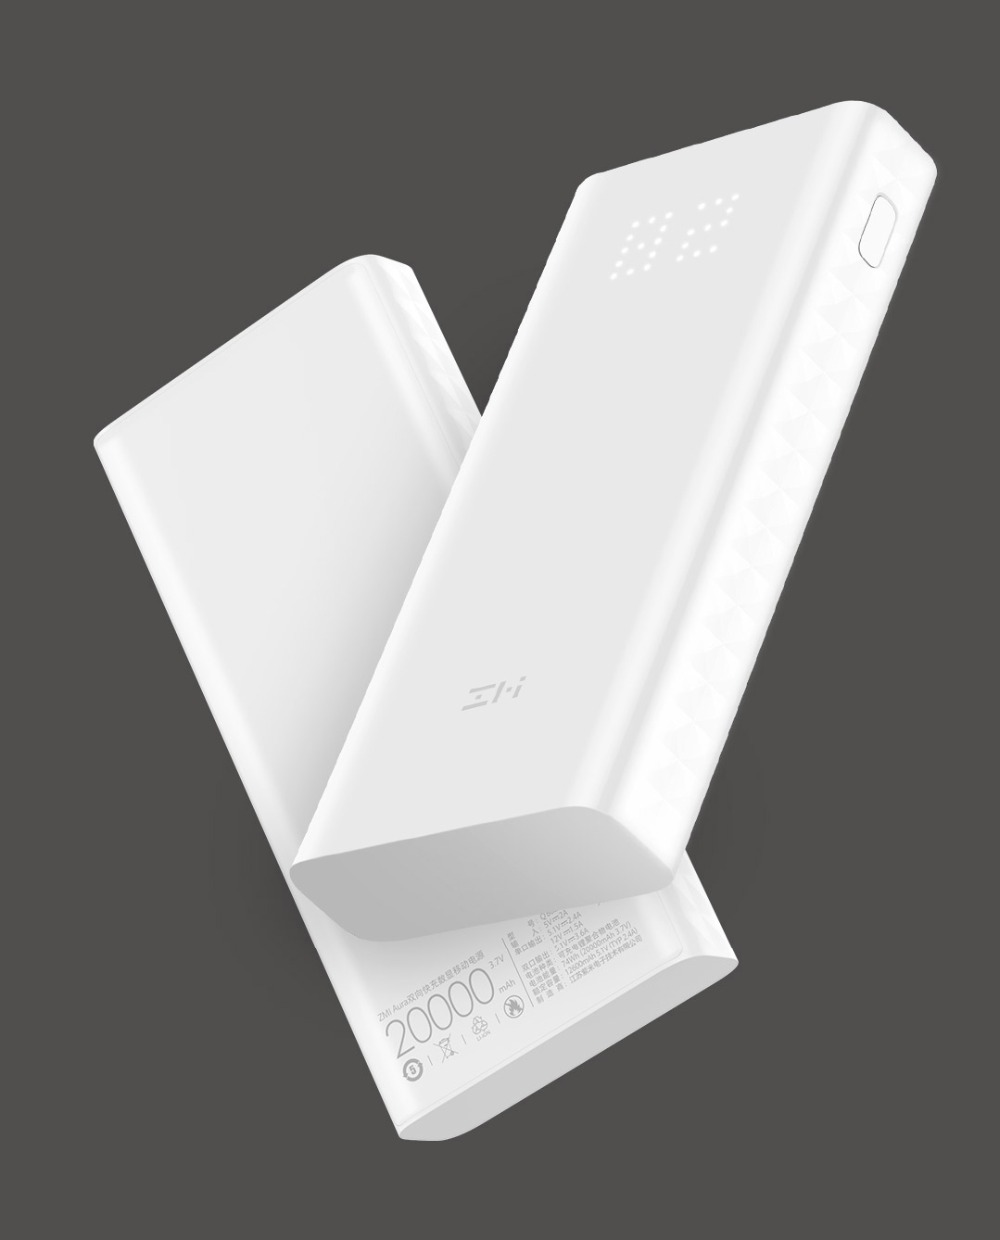 2018 Xiaomi ZMI Power Bank QB821 20000mAh Power Digital Display QC3.0 Fast Charging Dual USB 20000 mAh Powerbank for Smartphone аккумулятор xiaomi zmi power bank aura qb821 20000mah white